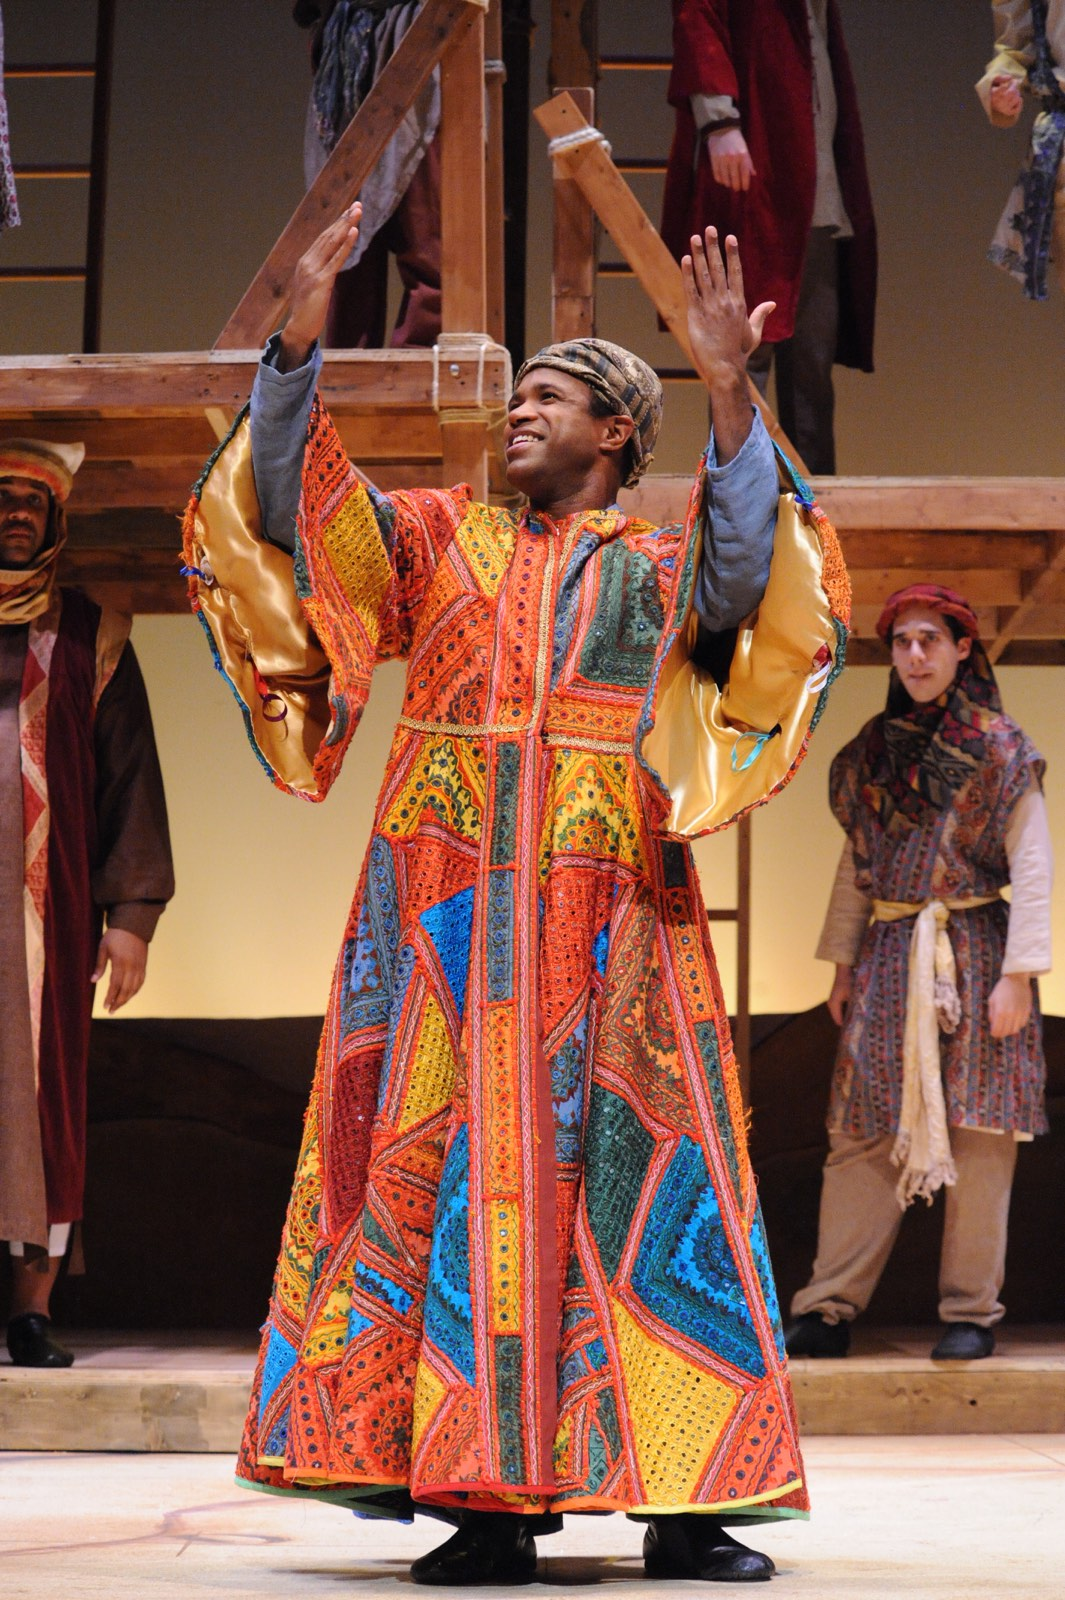 JOSEPH AND THE AMAZING TECHNICOLOR DREAMCOAT - Stephawn Stephens as Reuben, Alan Wiggins as Joseph, and Ben Lurye as Simeon<br>Set design by Eugenia Furneaux, Lighting by Dan Covey, Costumes by Ivania Stack - photo by Stan Barouh